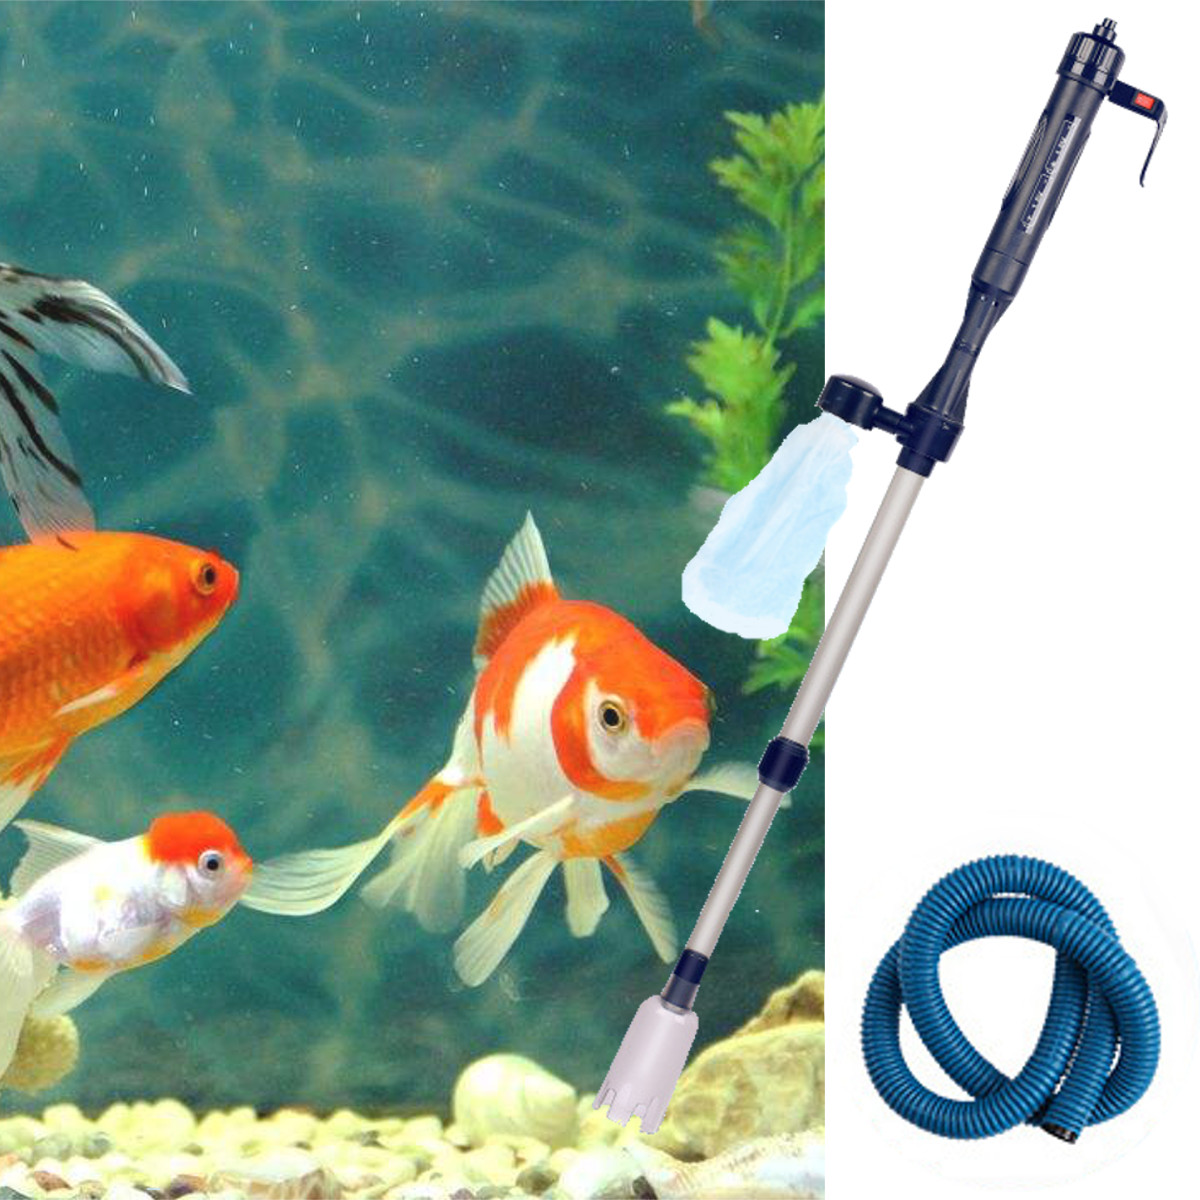 Battery Powered Aquarium Gravel Cleaner Vacuum Siphon Fish Tank Water Change by